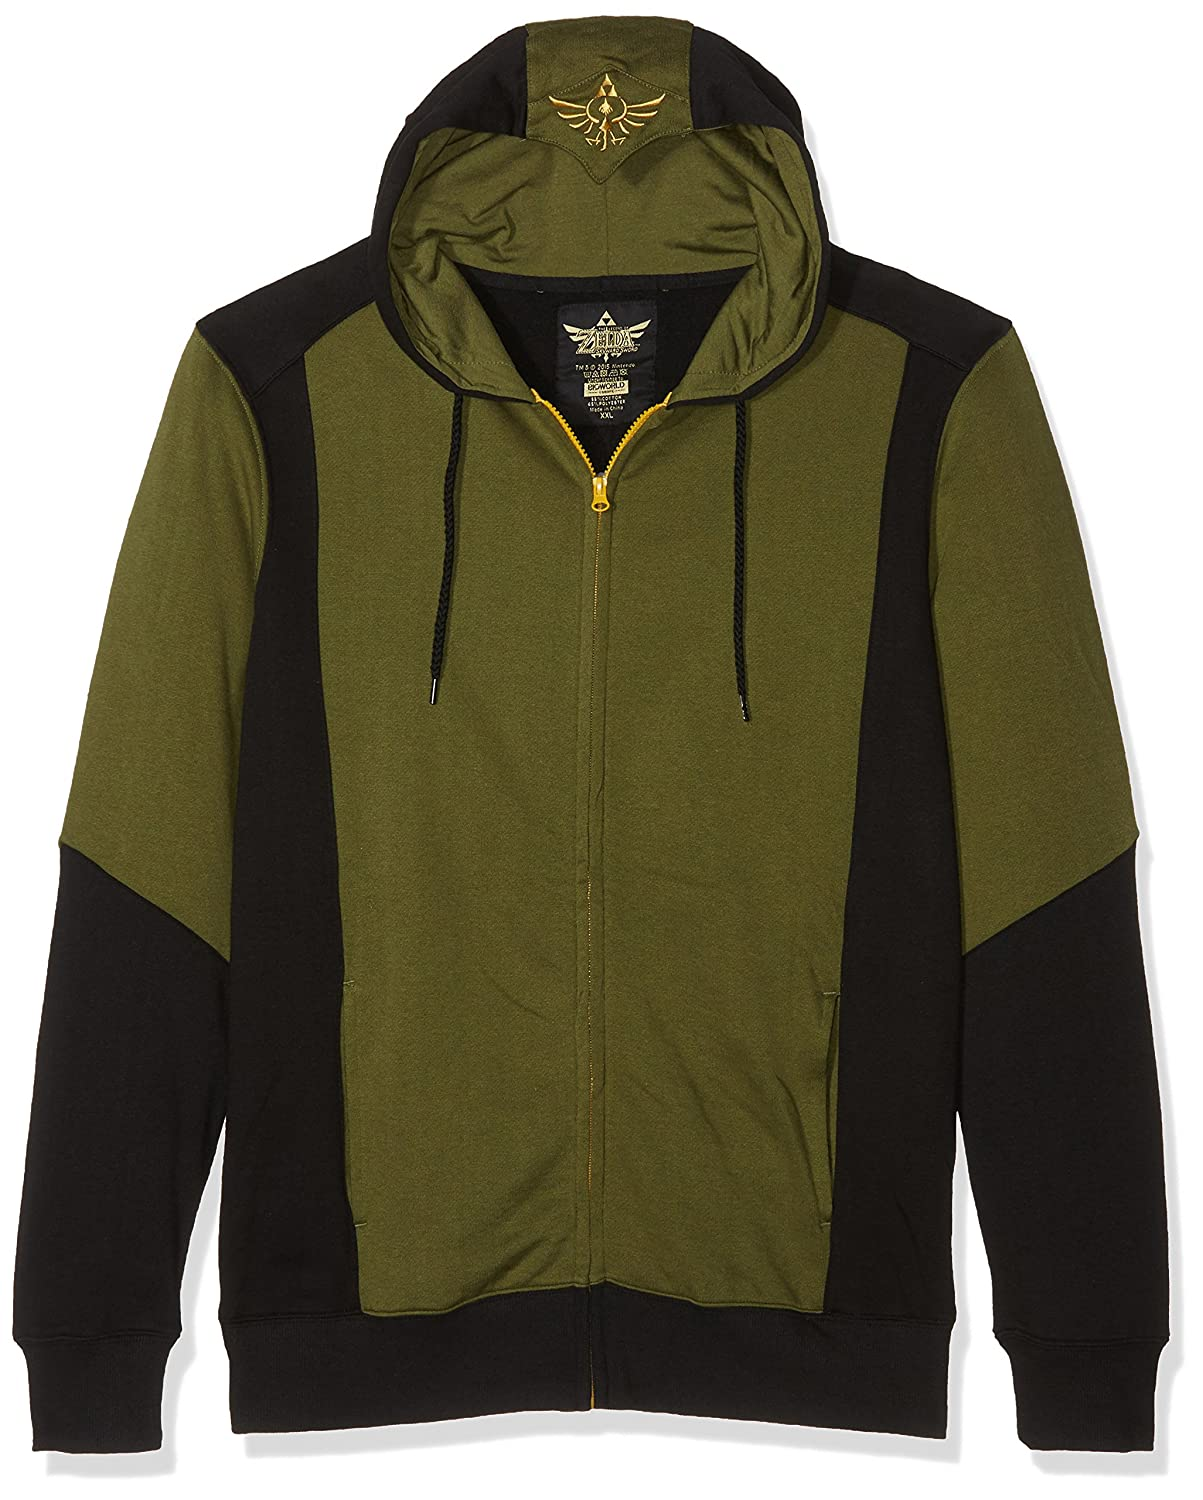 The Legend Of Zelda Green Triforce Sudadera capucha con cremallera negro-verde